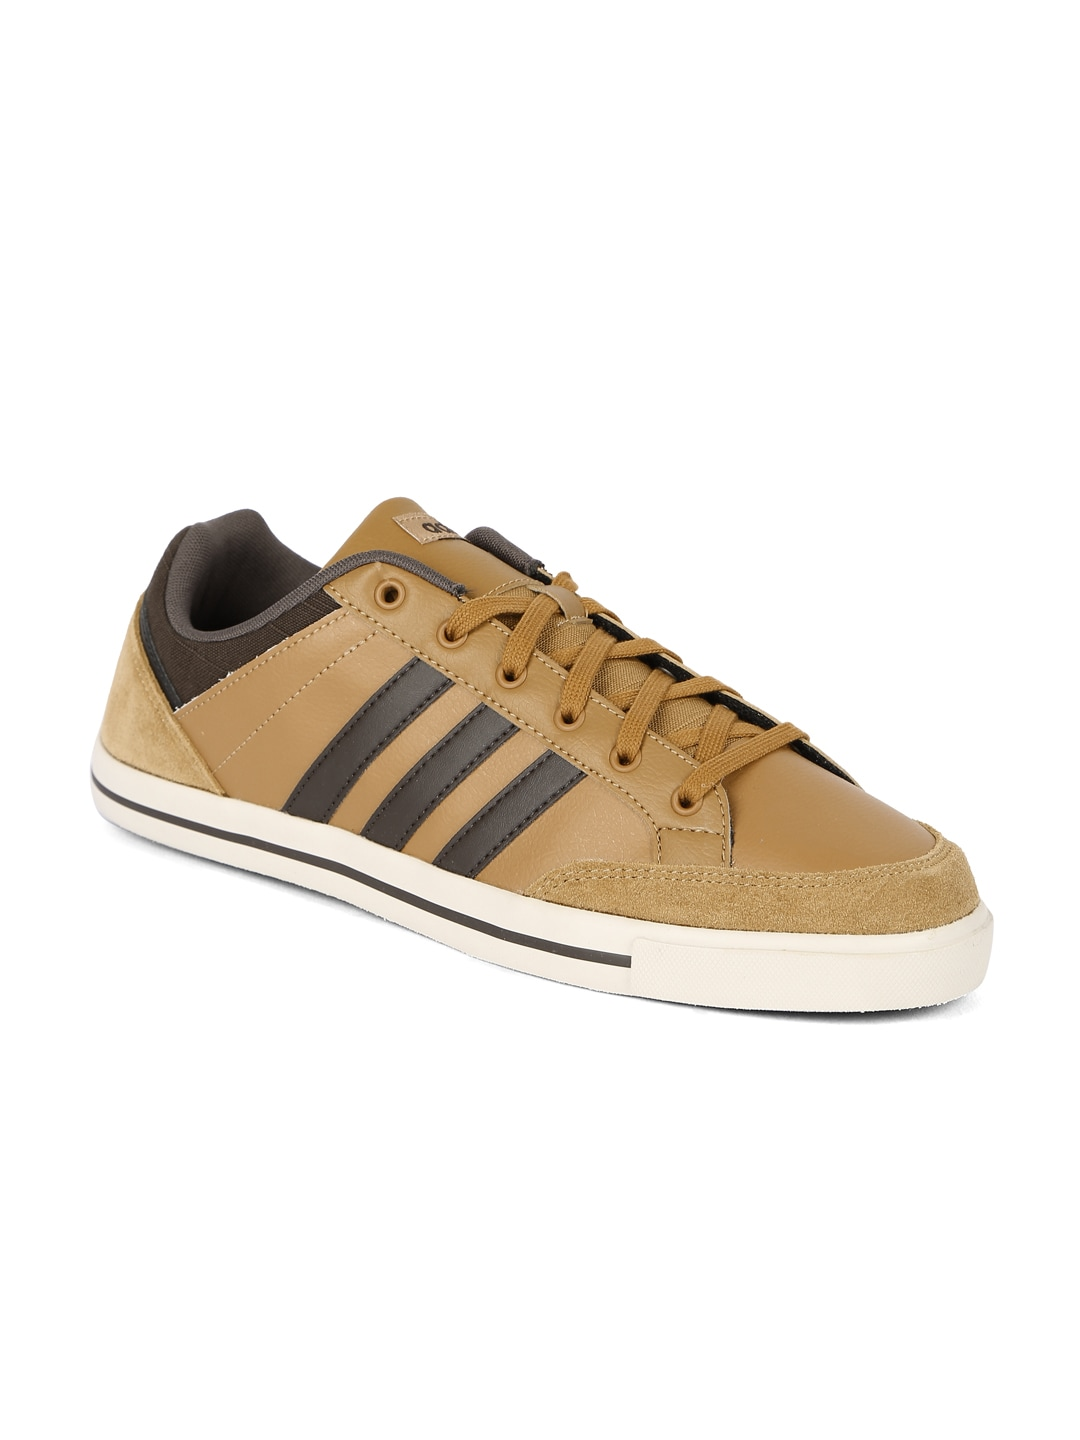 adidas neo brown shoes